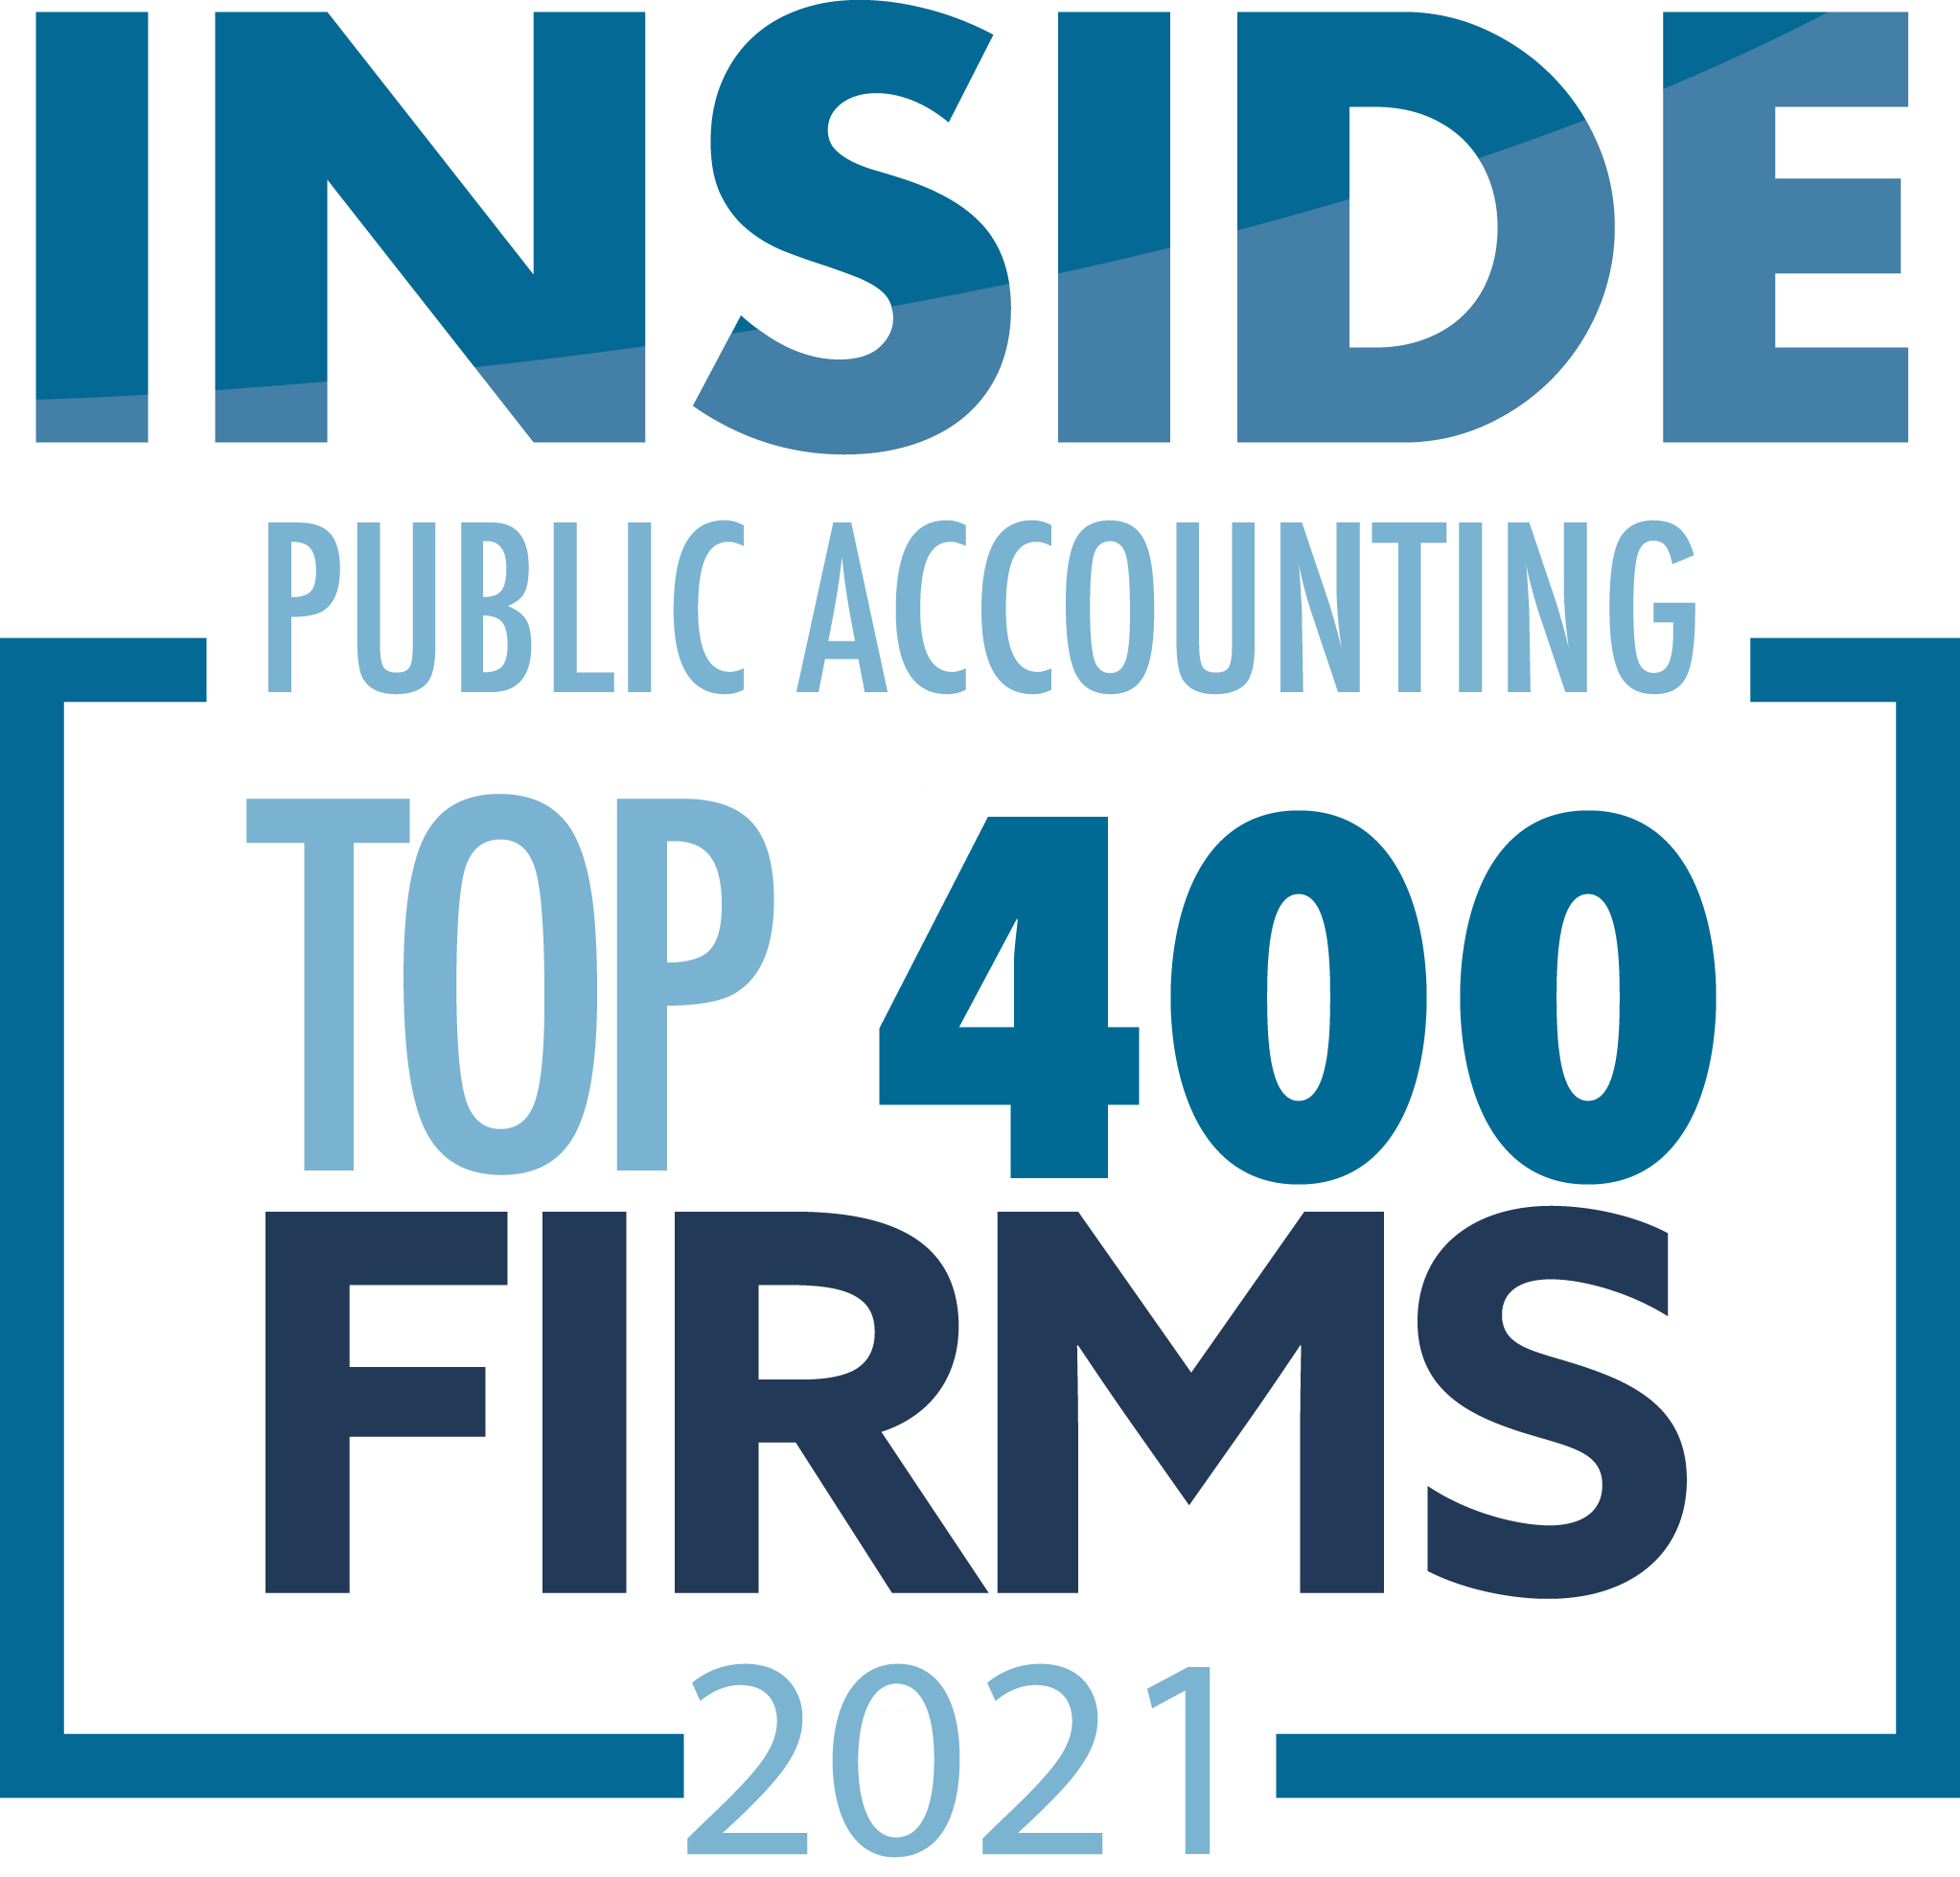 Inside Public Accounting Top 400 Firms 2021